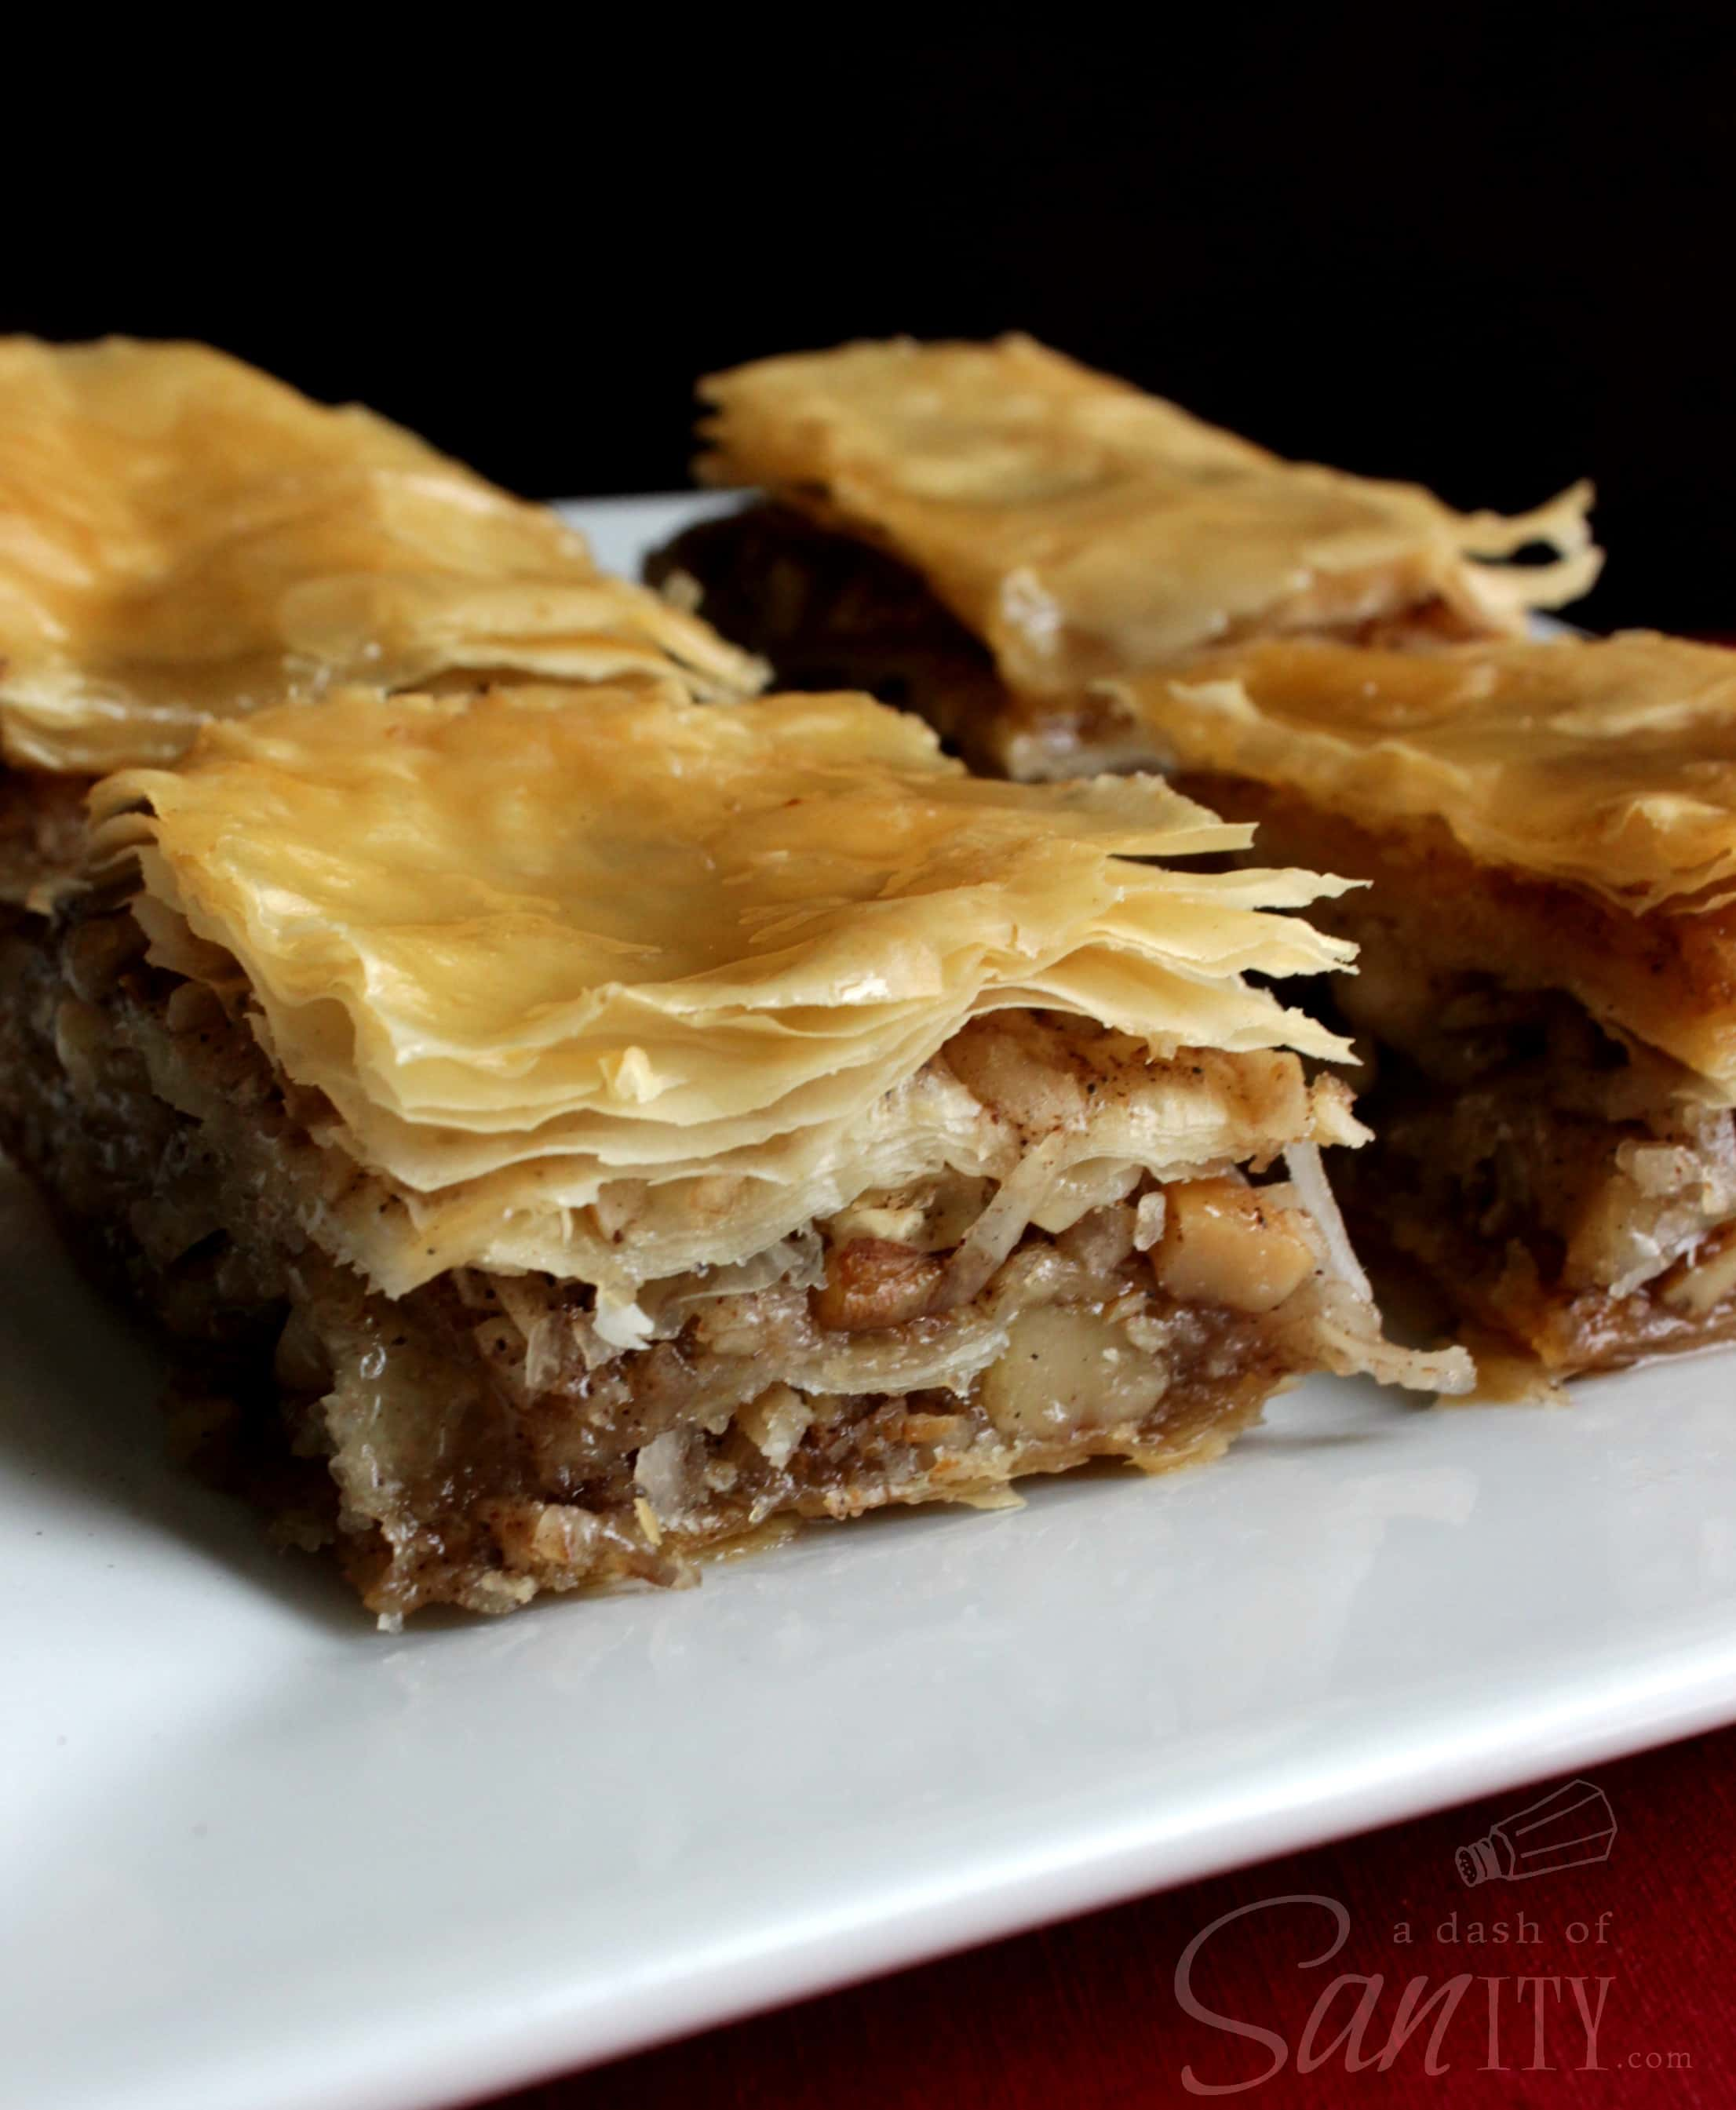 Nutty Baklava squares served on a plate